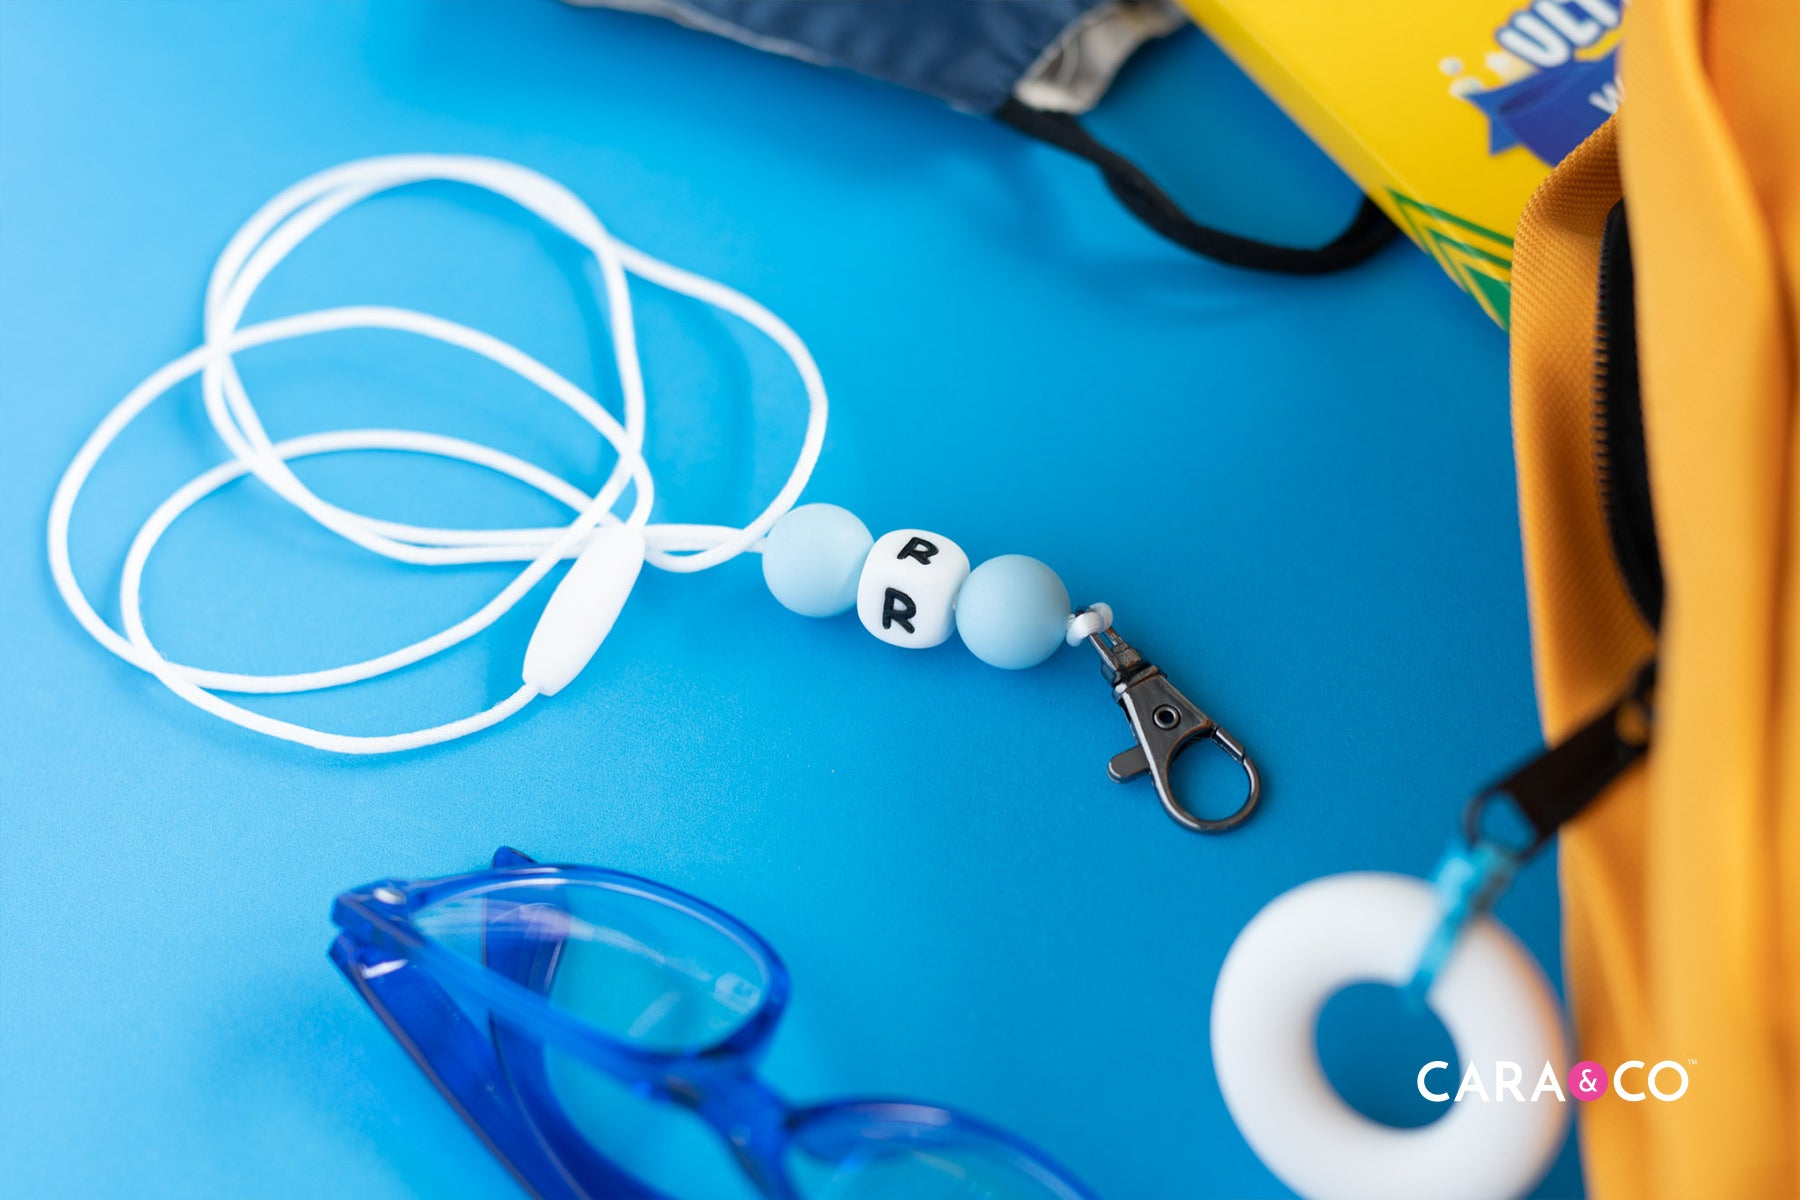 Back to school in style - Lanyard for holding glasses